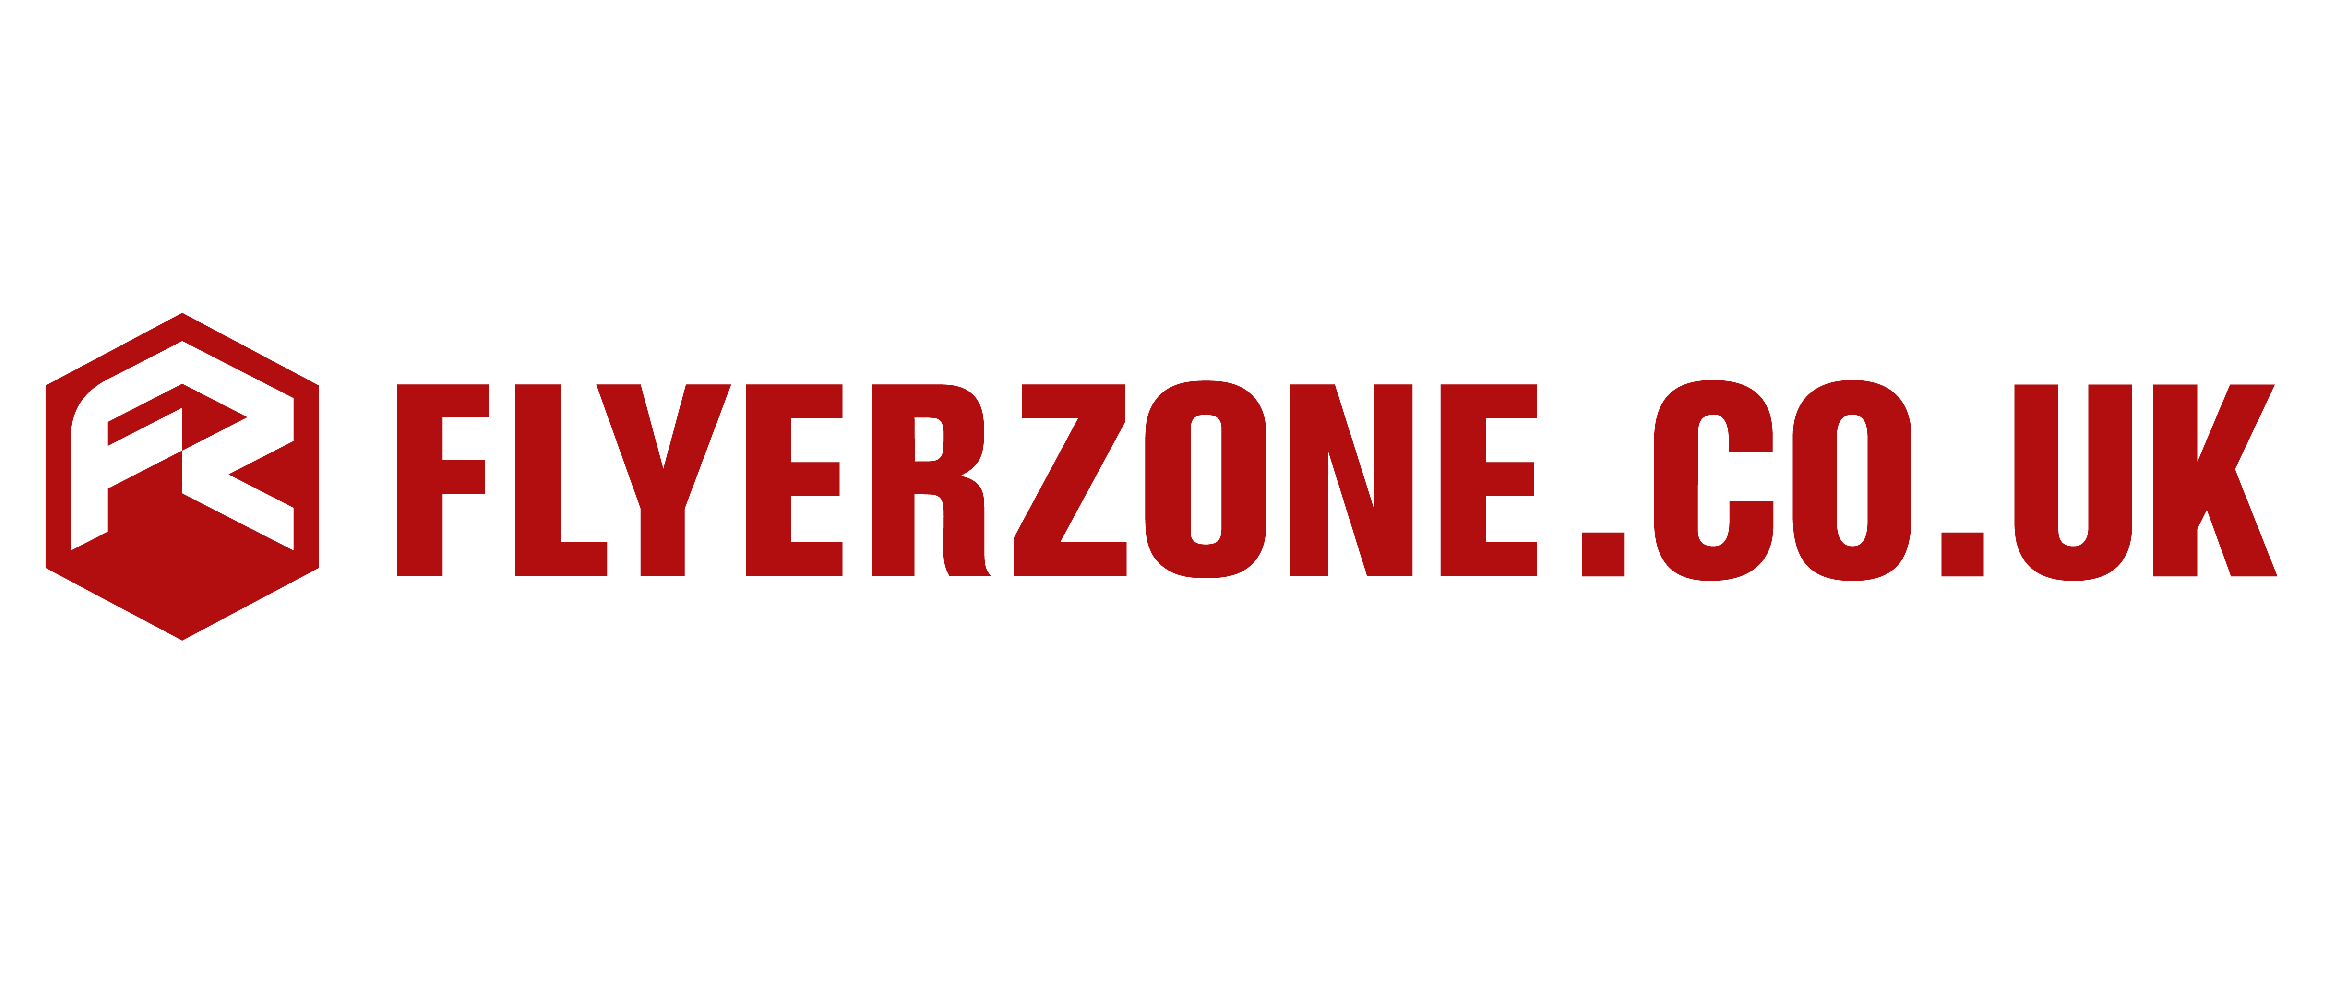 Flyerzone.co.uk